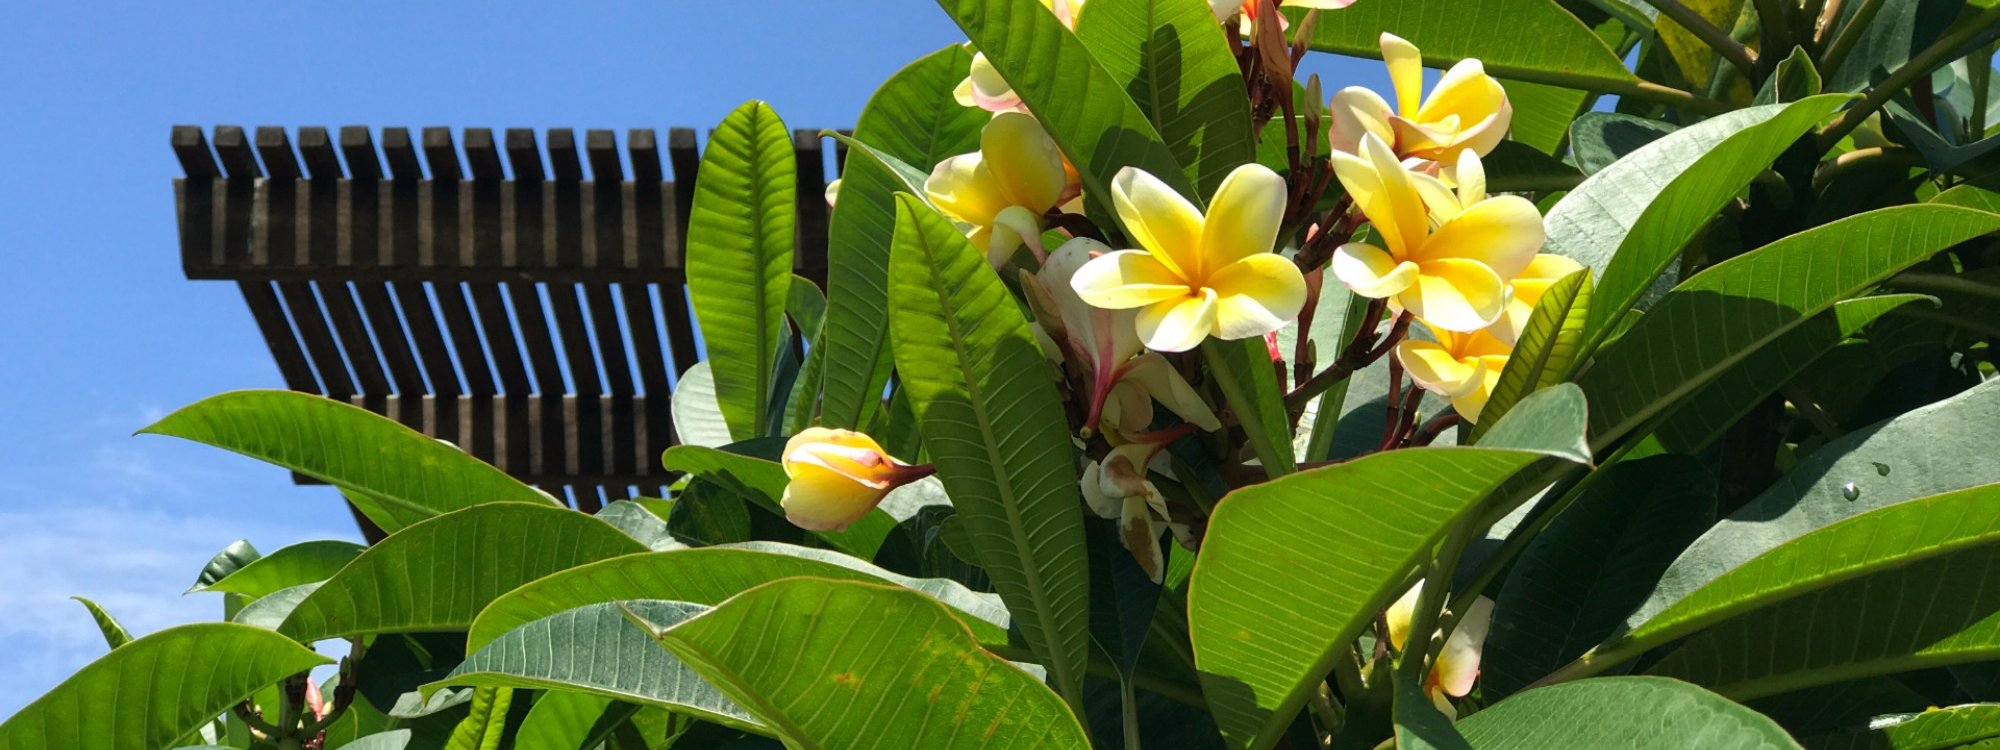 Frangipani trees provide cooling shade and spectacular colour in summertime.